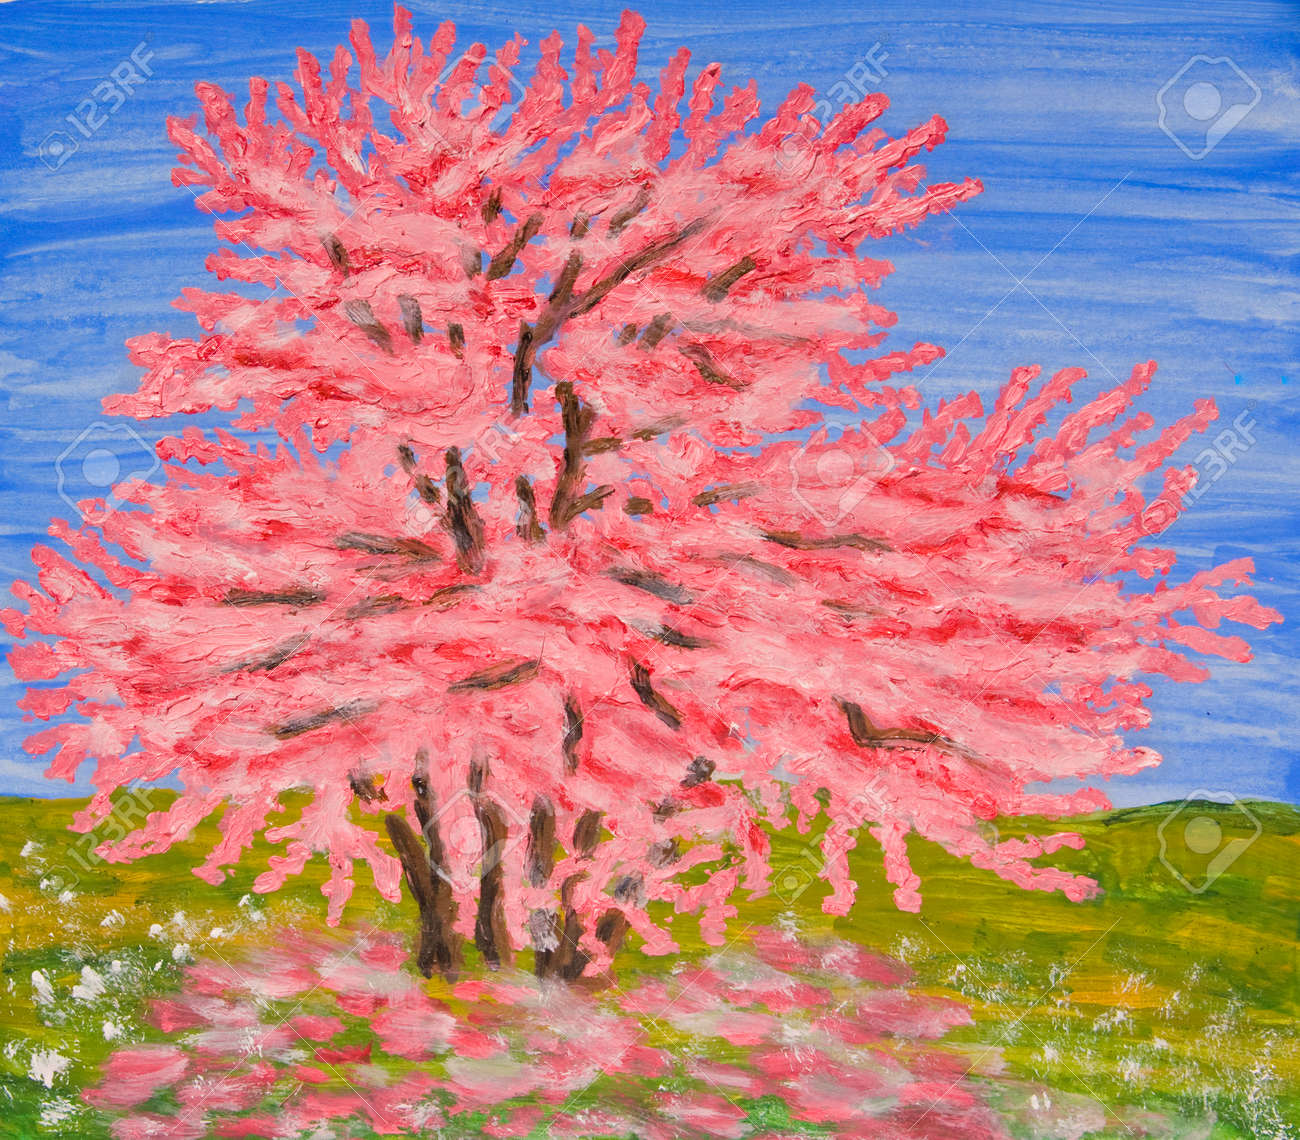 Cercis Tree In Blossom Oil Painting Stock Photo Picture And